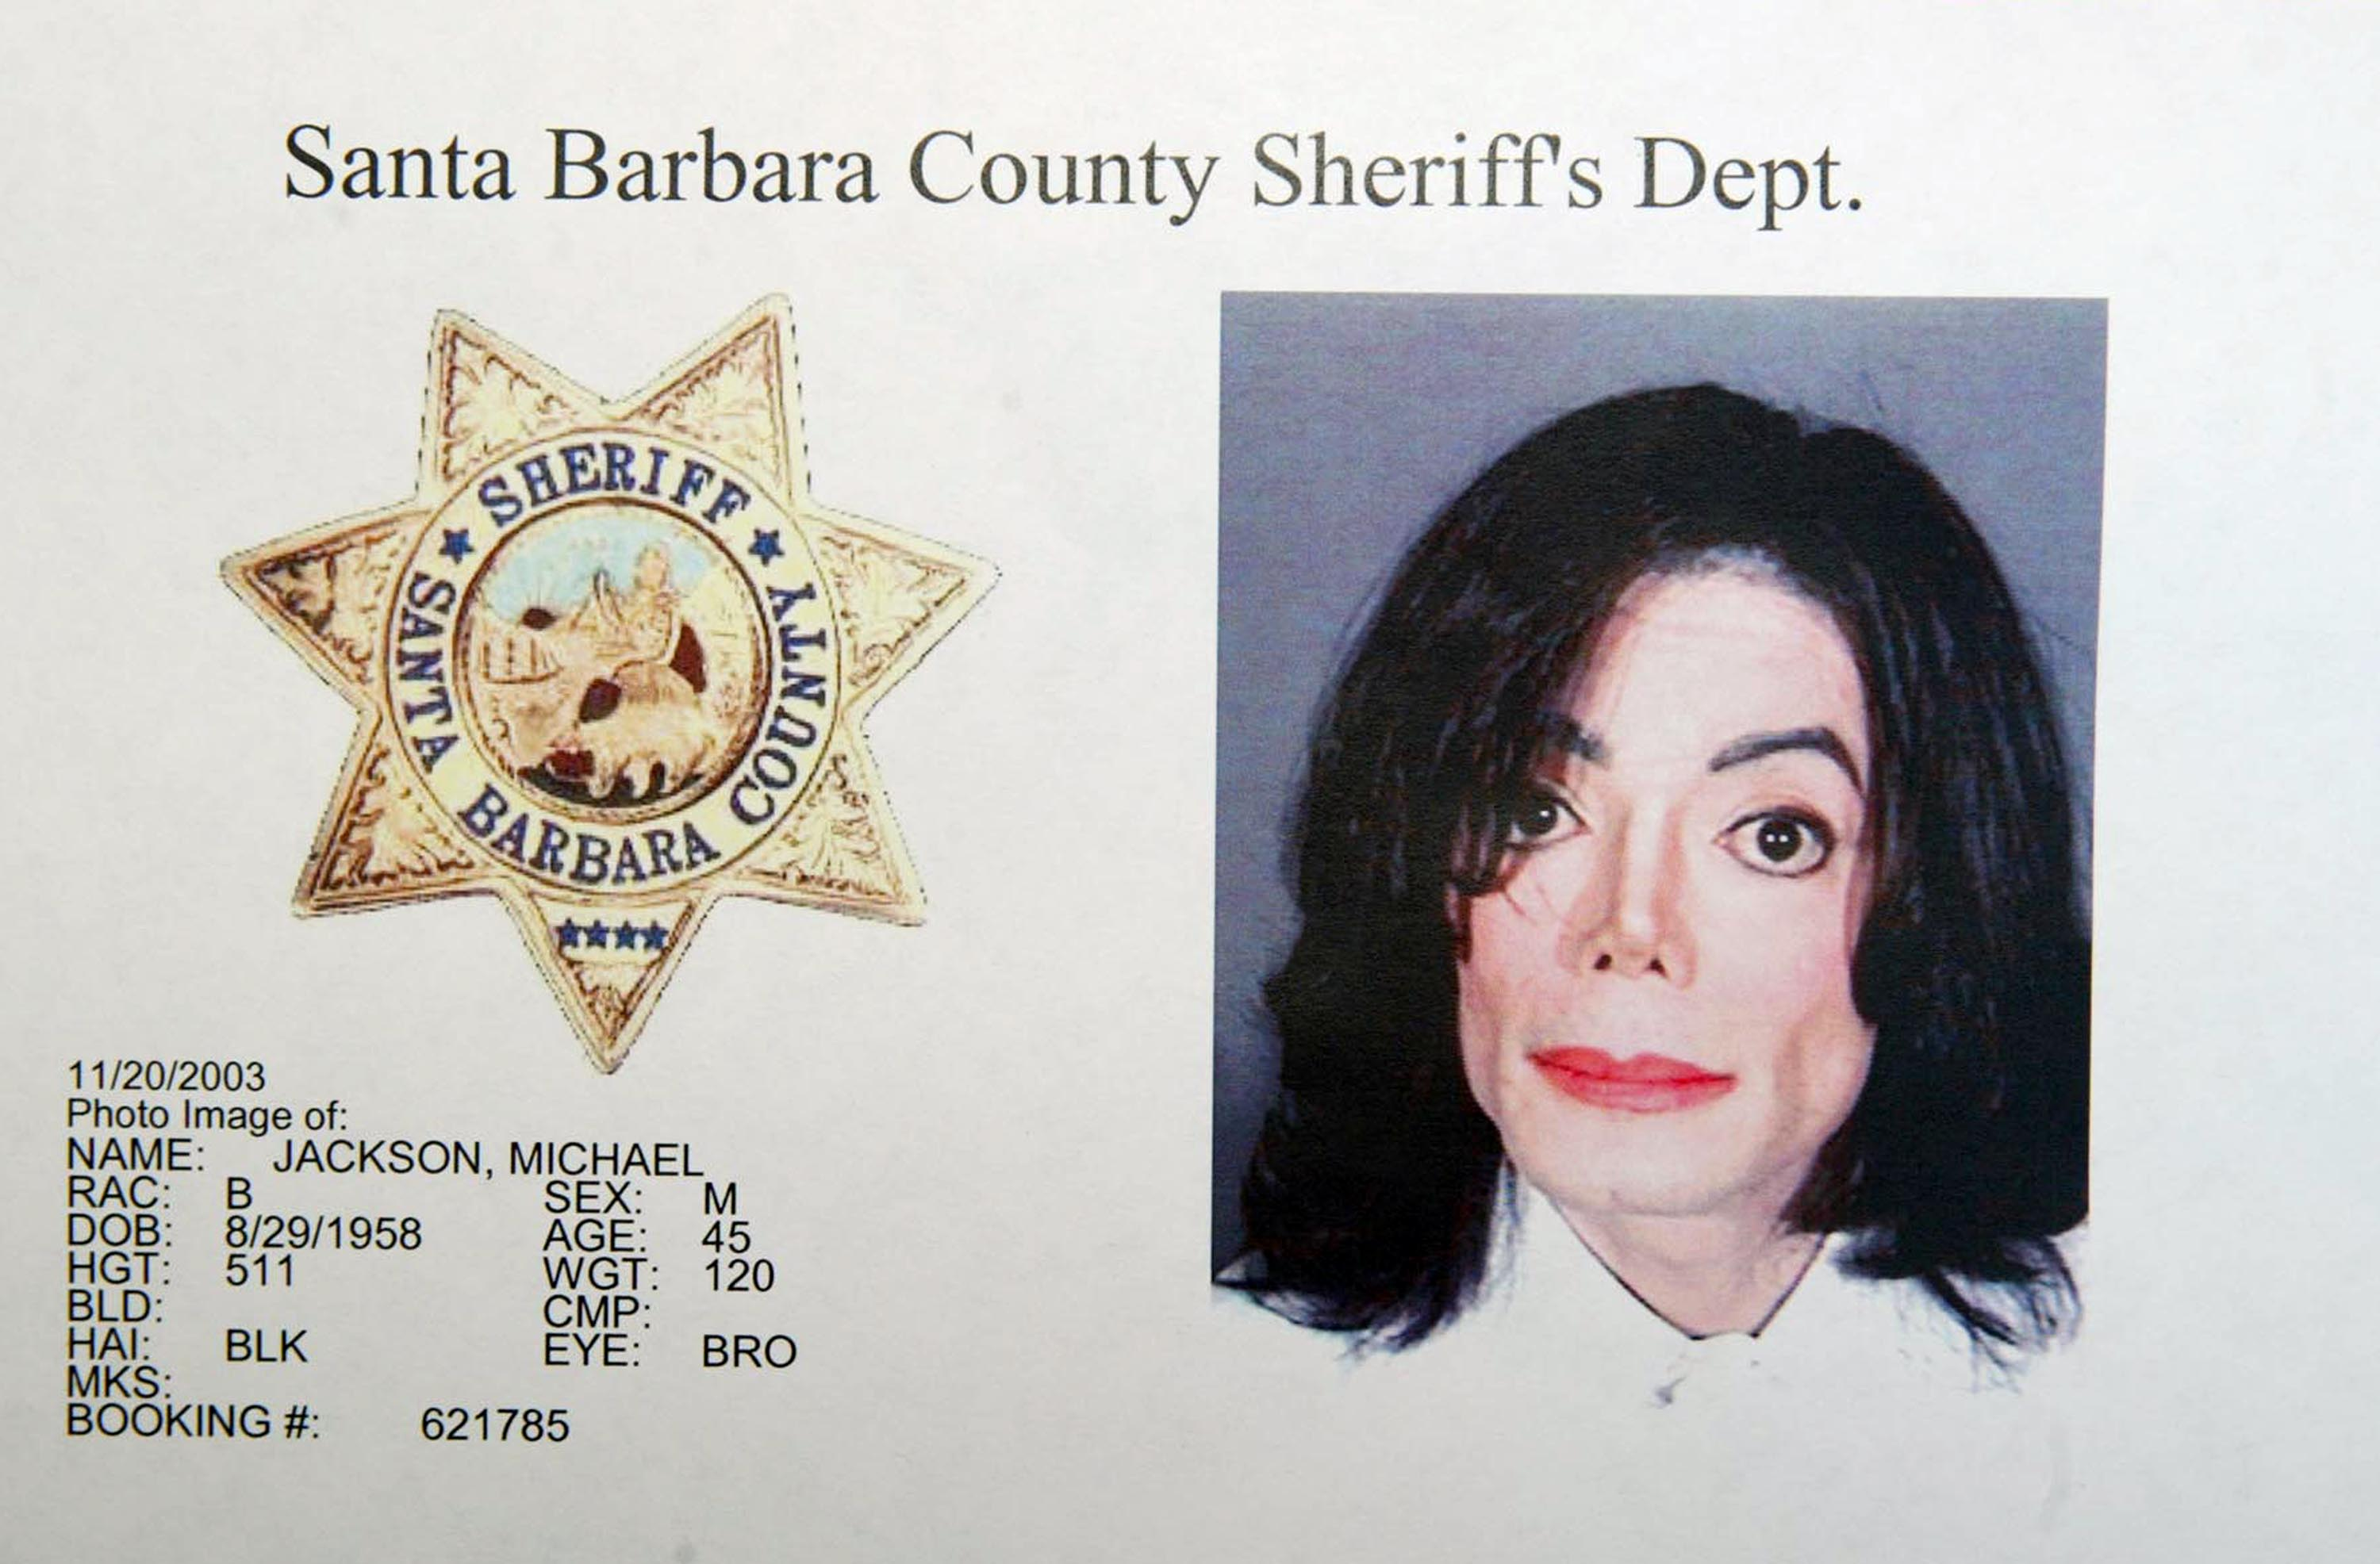 In this handout image provided by the Santa Barbara County Sheriff's Office, singer Michael Jackson is shown in a mug shot after he was booked on multiple counts for allegedly molesting a child November 20, 2003 in Santa Barbara, California. He was later acquitted of the charges. (Getty)